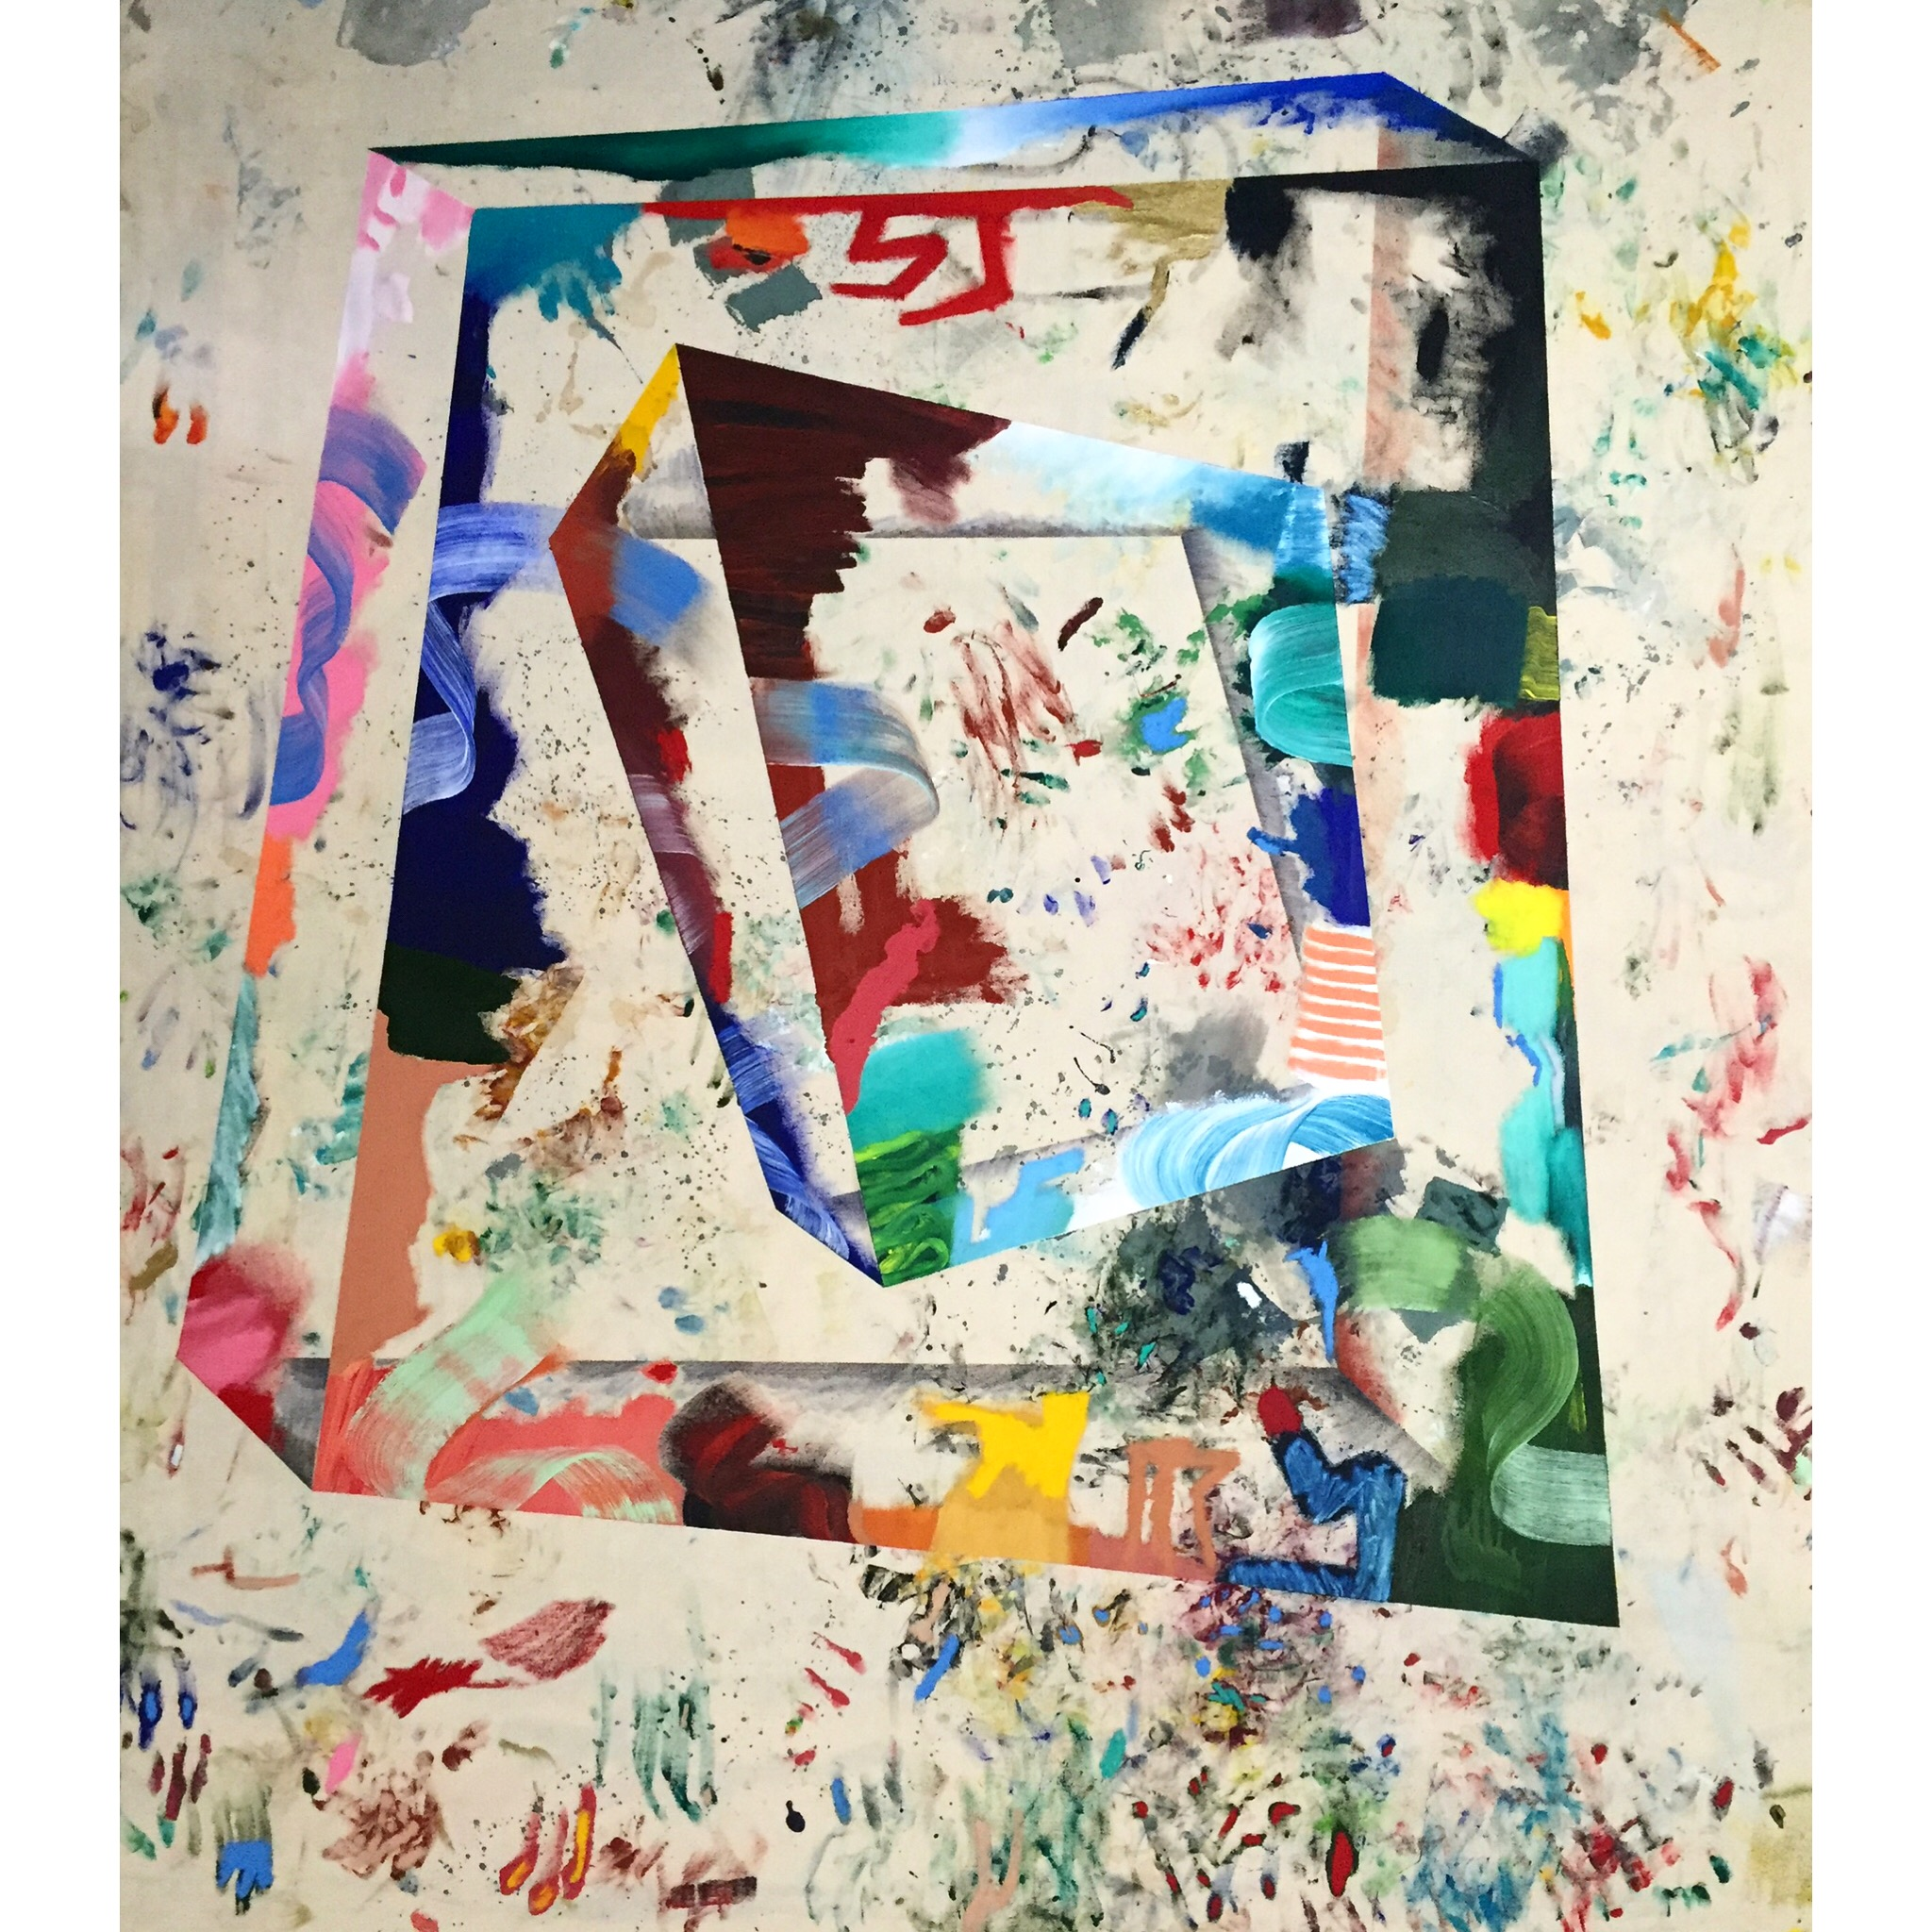 Acrylic, Oil, Oil Stick, Fabric Paint, Soft Pastel and Marker on Canvas  58 x 65 in  147 x 165 cm